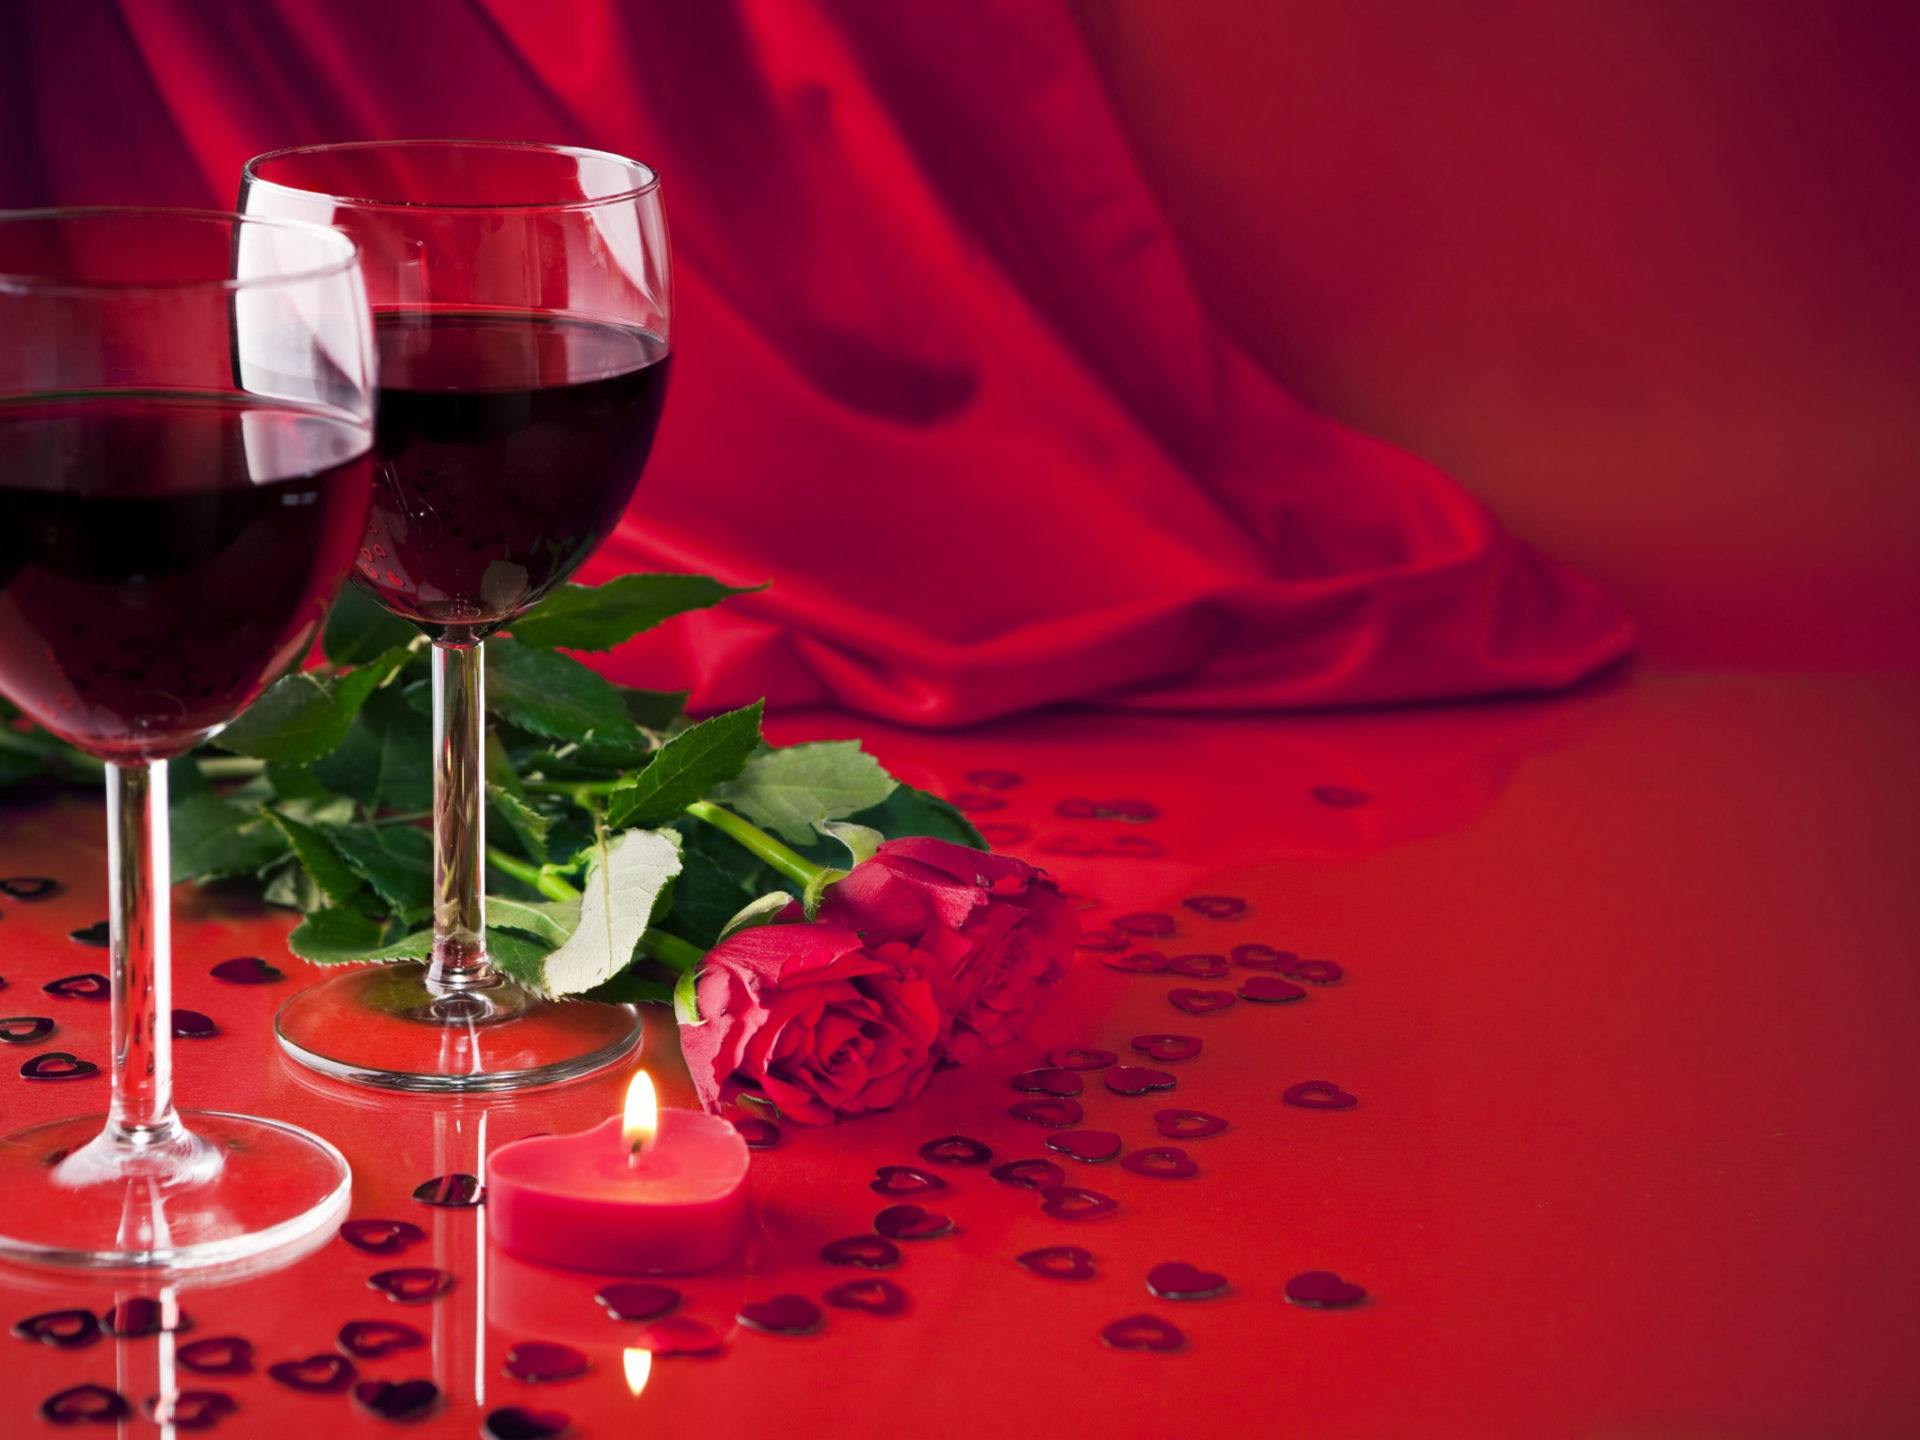 Glass Animals Wallpaper Glasses Of Wine Red Roses Light Candle 001 Wallpapers13 Com